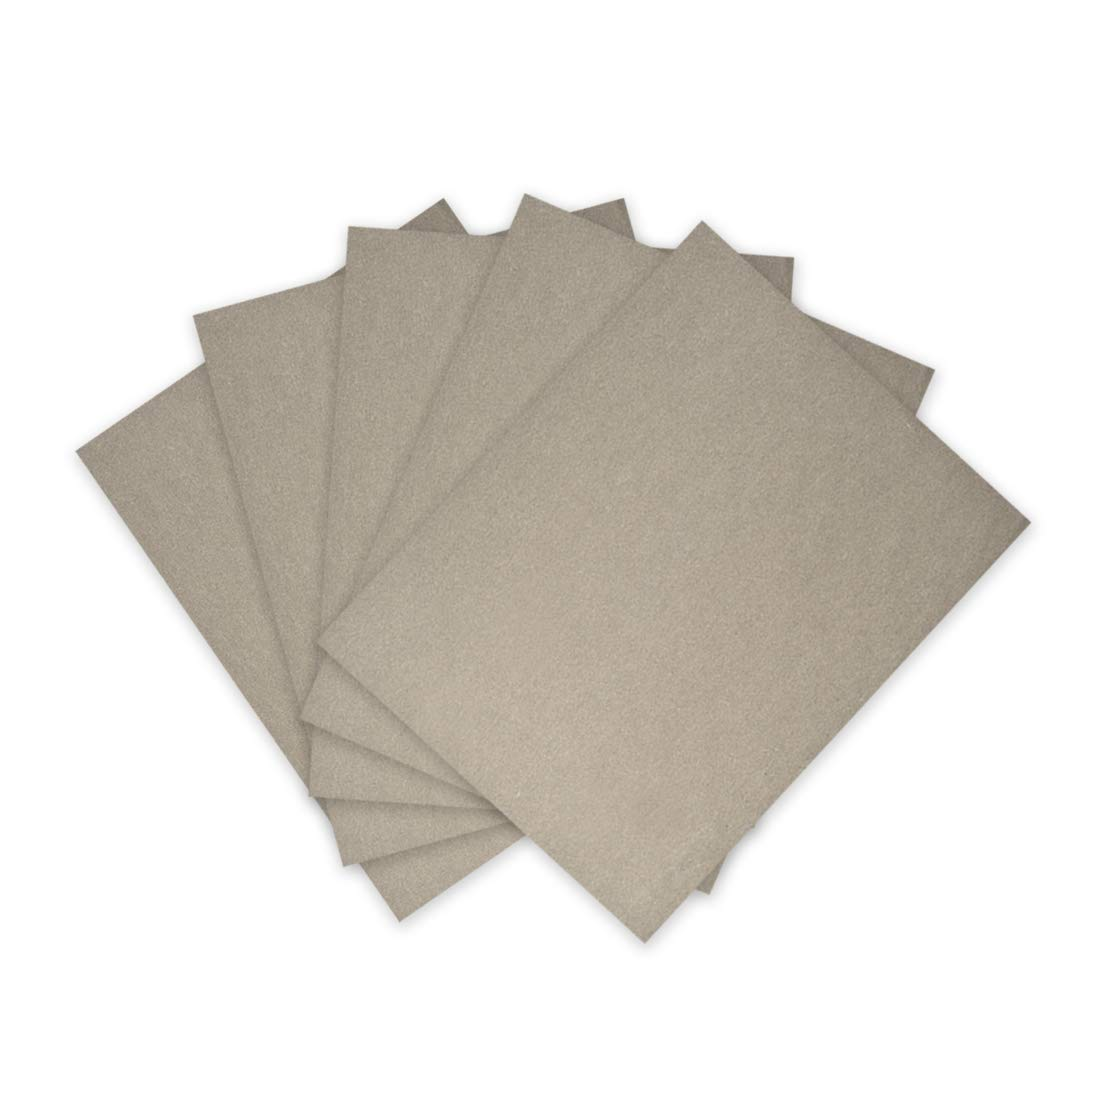 5pcs 10000 Grains Assortment of wet dry waterproof sandpaper 9 inches X 11 inches Sheets of abrasive paper for wood furniture Metal Polished automotive